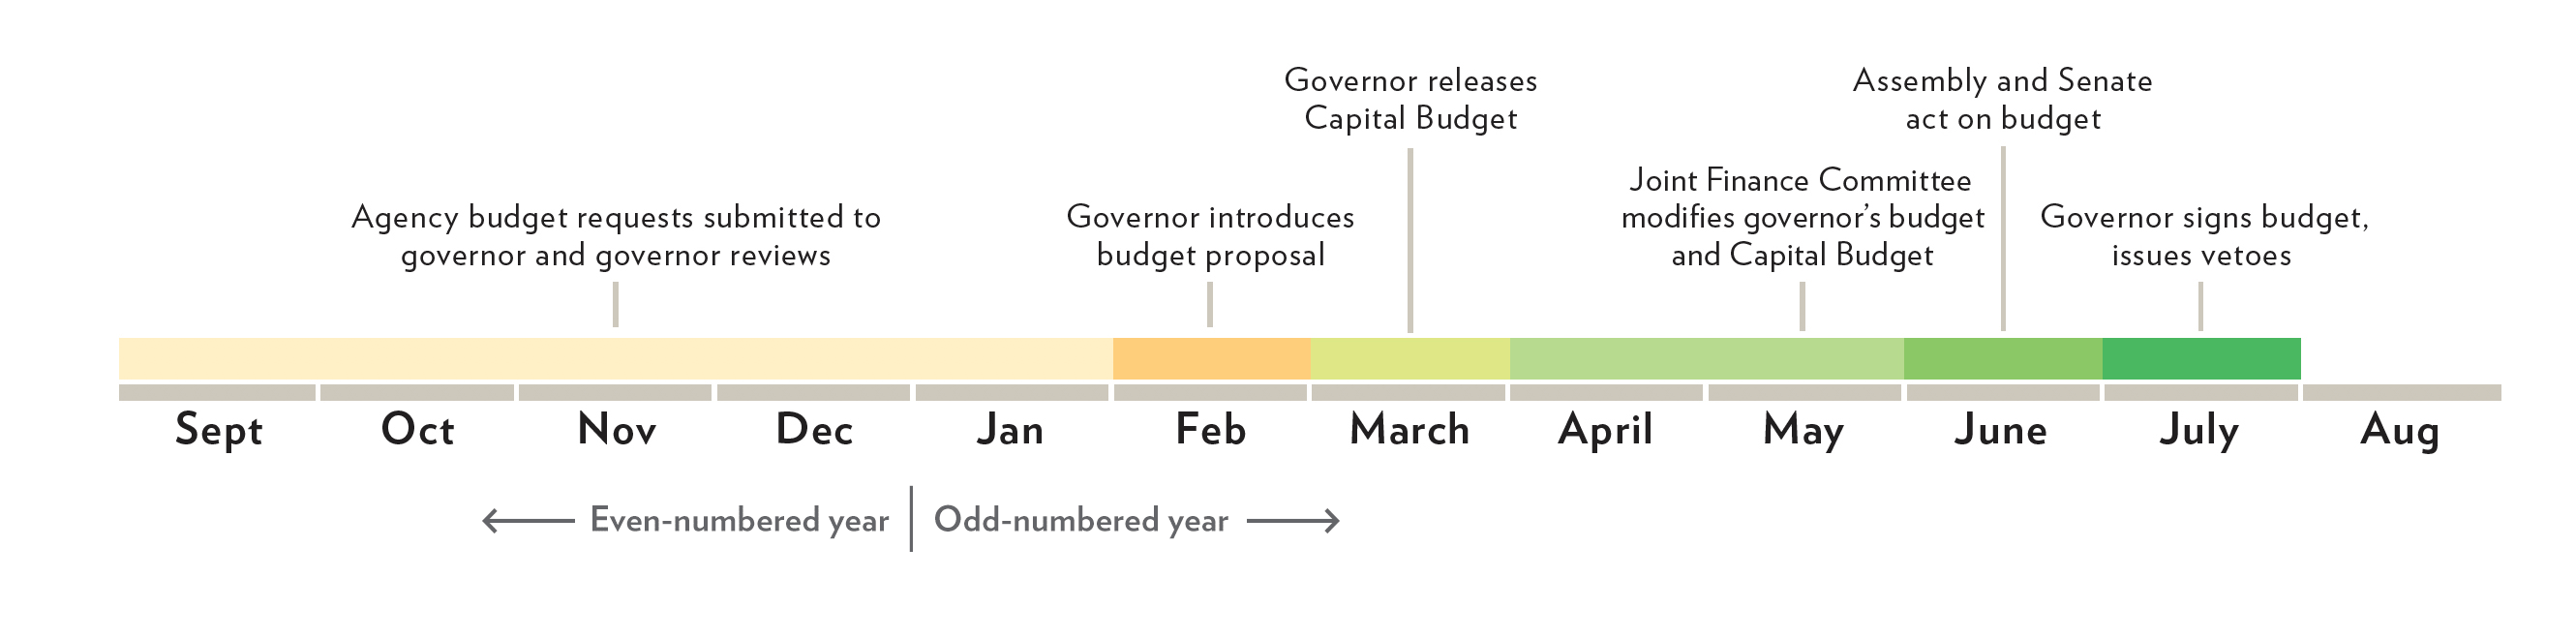 Budget timeline illustration: Agency budget requests submitted to governor (in November of every even-numbered year); Governor introduces budget proposal (February of every odd-numbered year); Governor releases Capital Budget (March); Joint Finance Committee modifies both budgets (May); Assembly and Senate act on budget (June); Governor signs budget and/or issues vetoes (July)